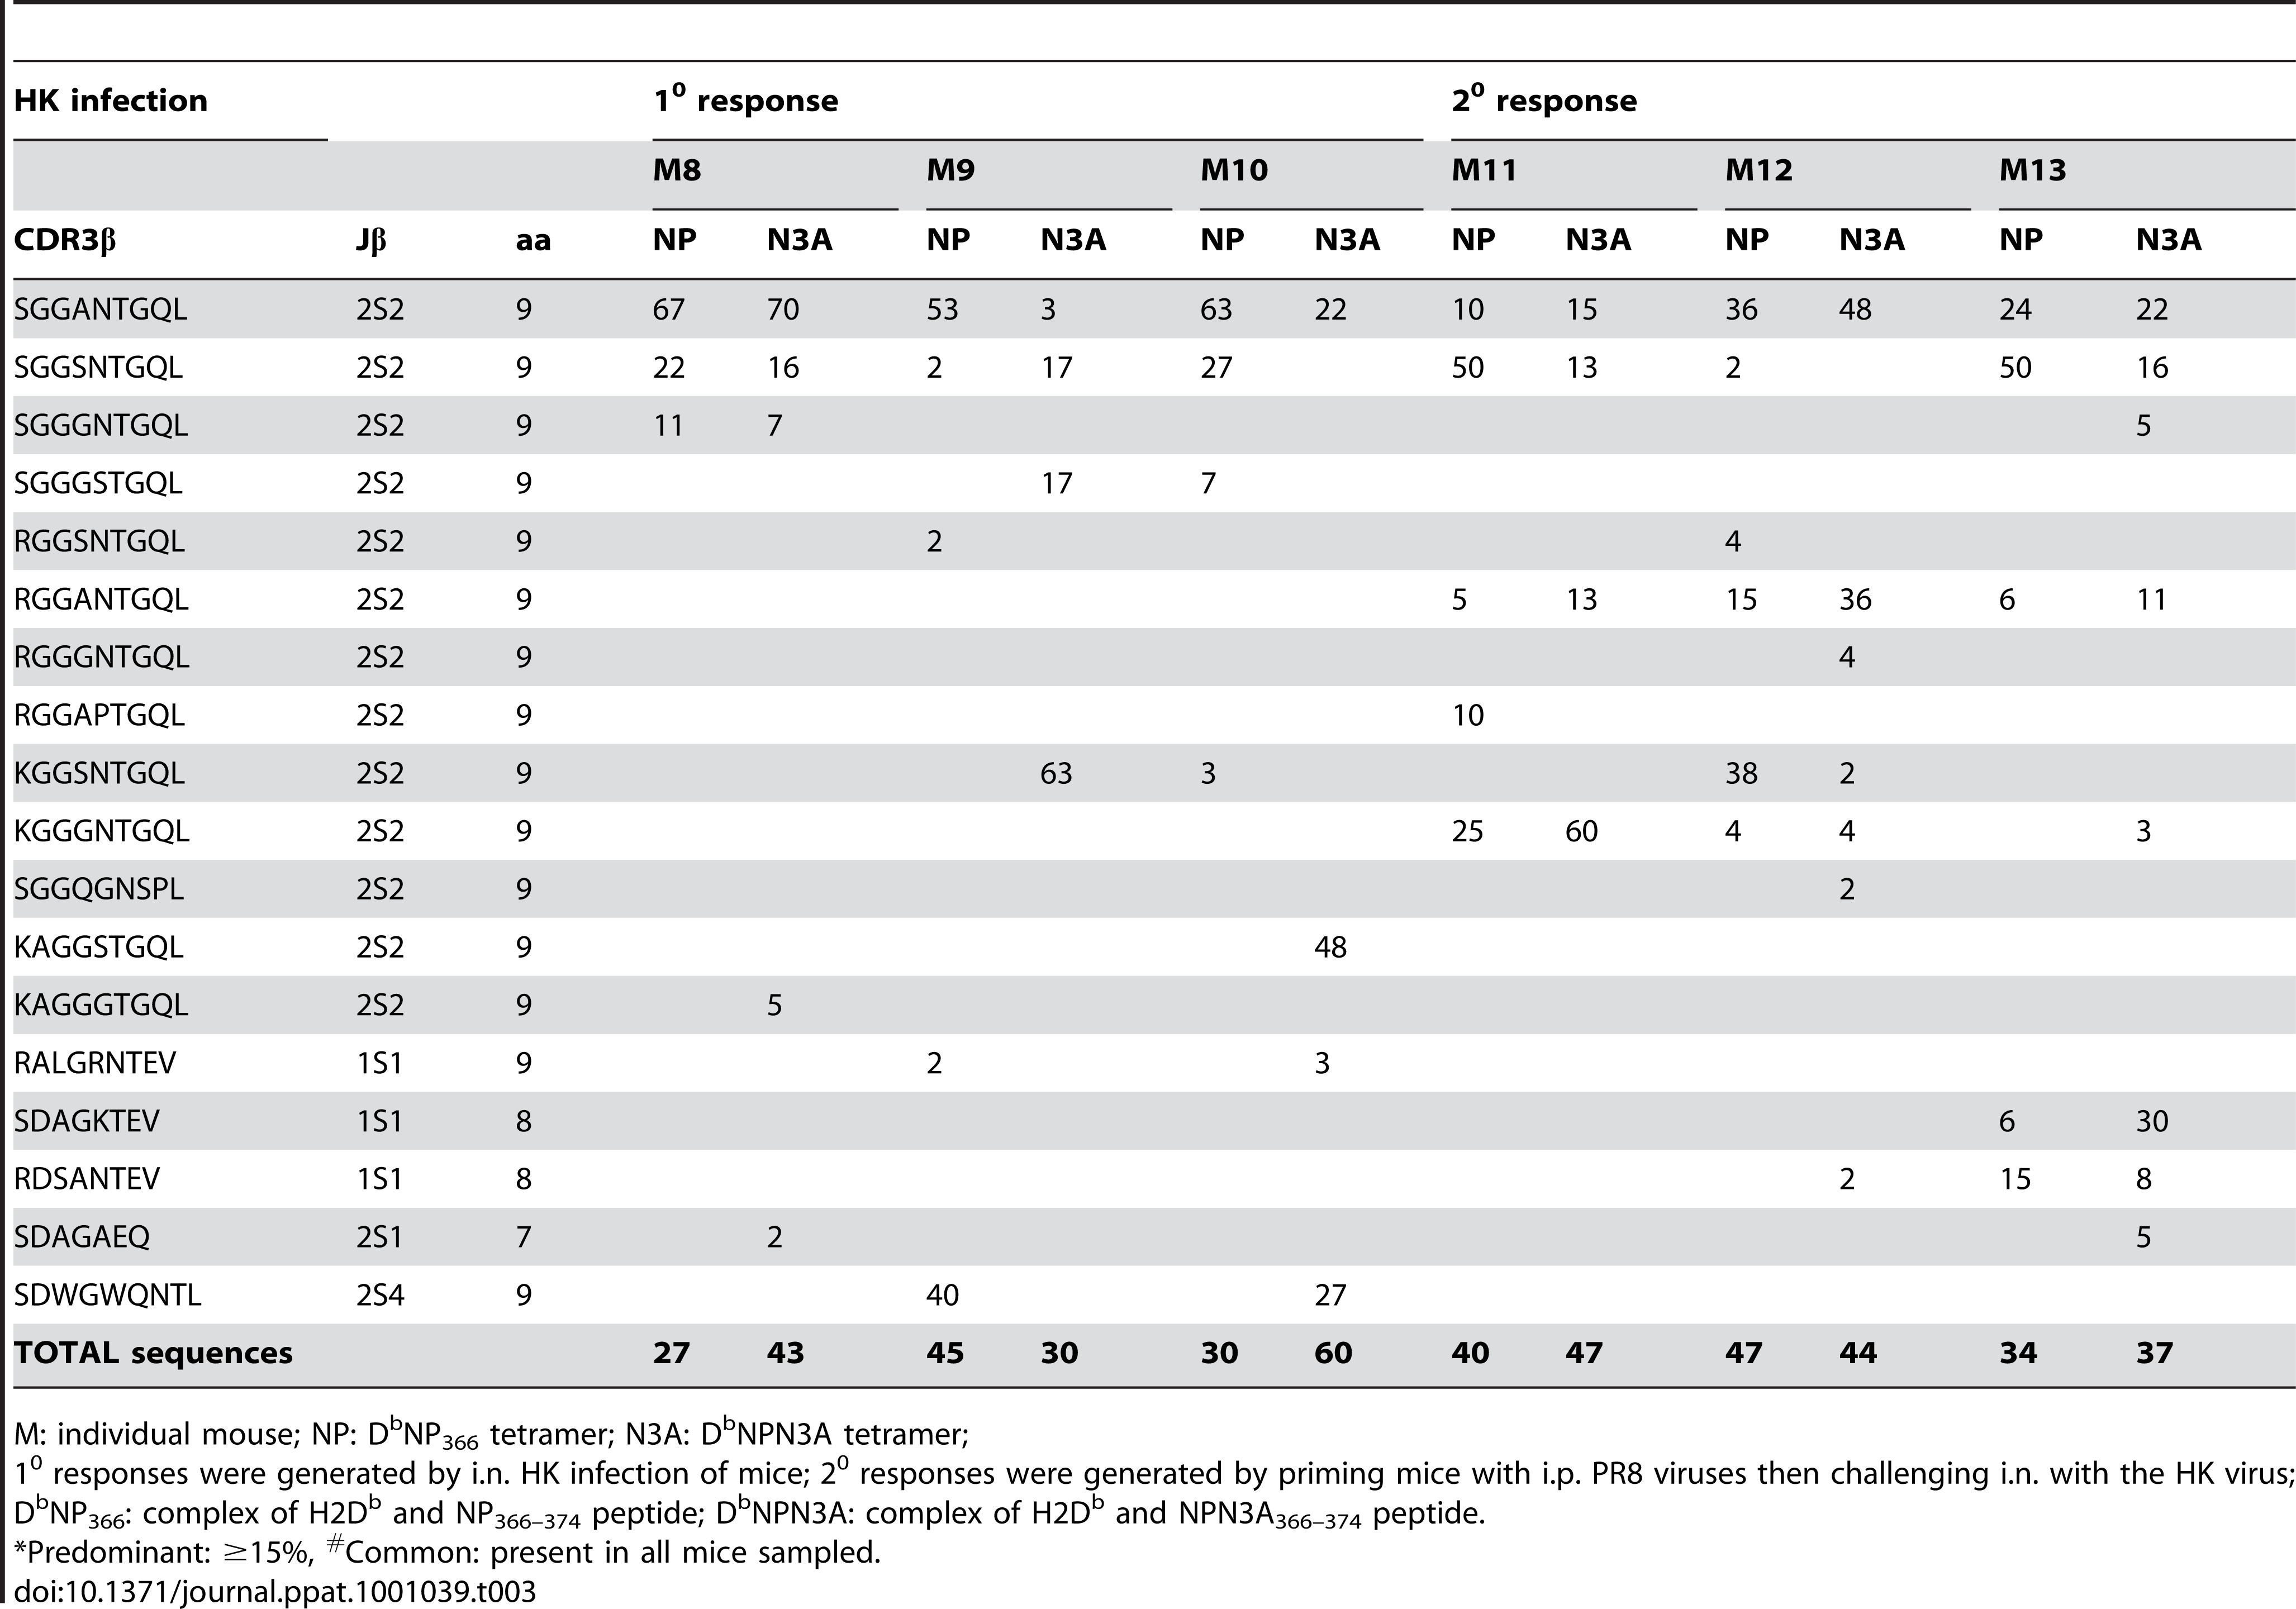 Frequency of TCRβ clonotypes in D<sup>b</sup>NP<sub>366</sub><sup>+</sup>Vβ8.3<sup>+</sup>CD8<sup>+</sup> T cells after 1<sup>0</sup> (M8–M10) and 2<sup>0</sup> (M11–M13) wt influenza virus infection detected with either the D<sup>b</sup>NP<sub>366</sub><sup>+</sup> or D<sup>b</sup>NPN3A<sup>+</sup> tetramer.